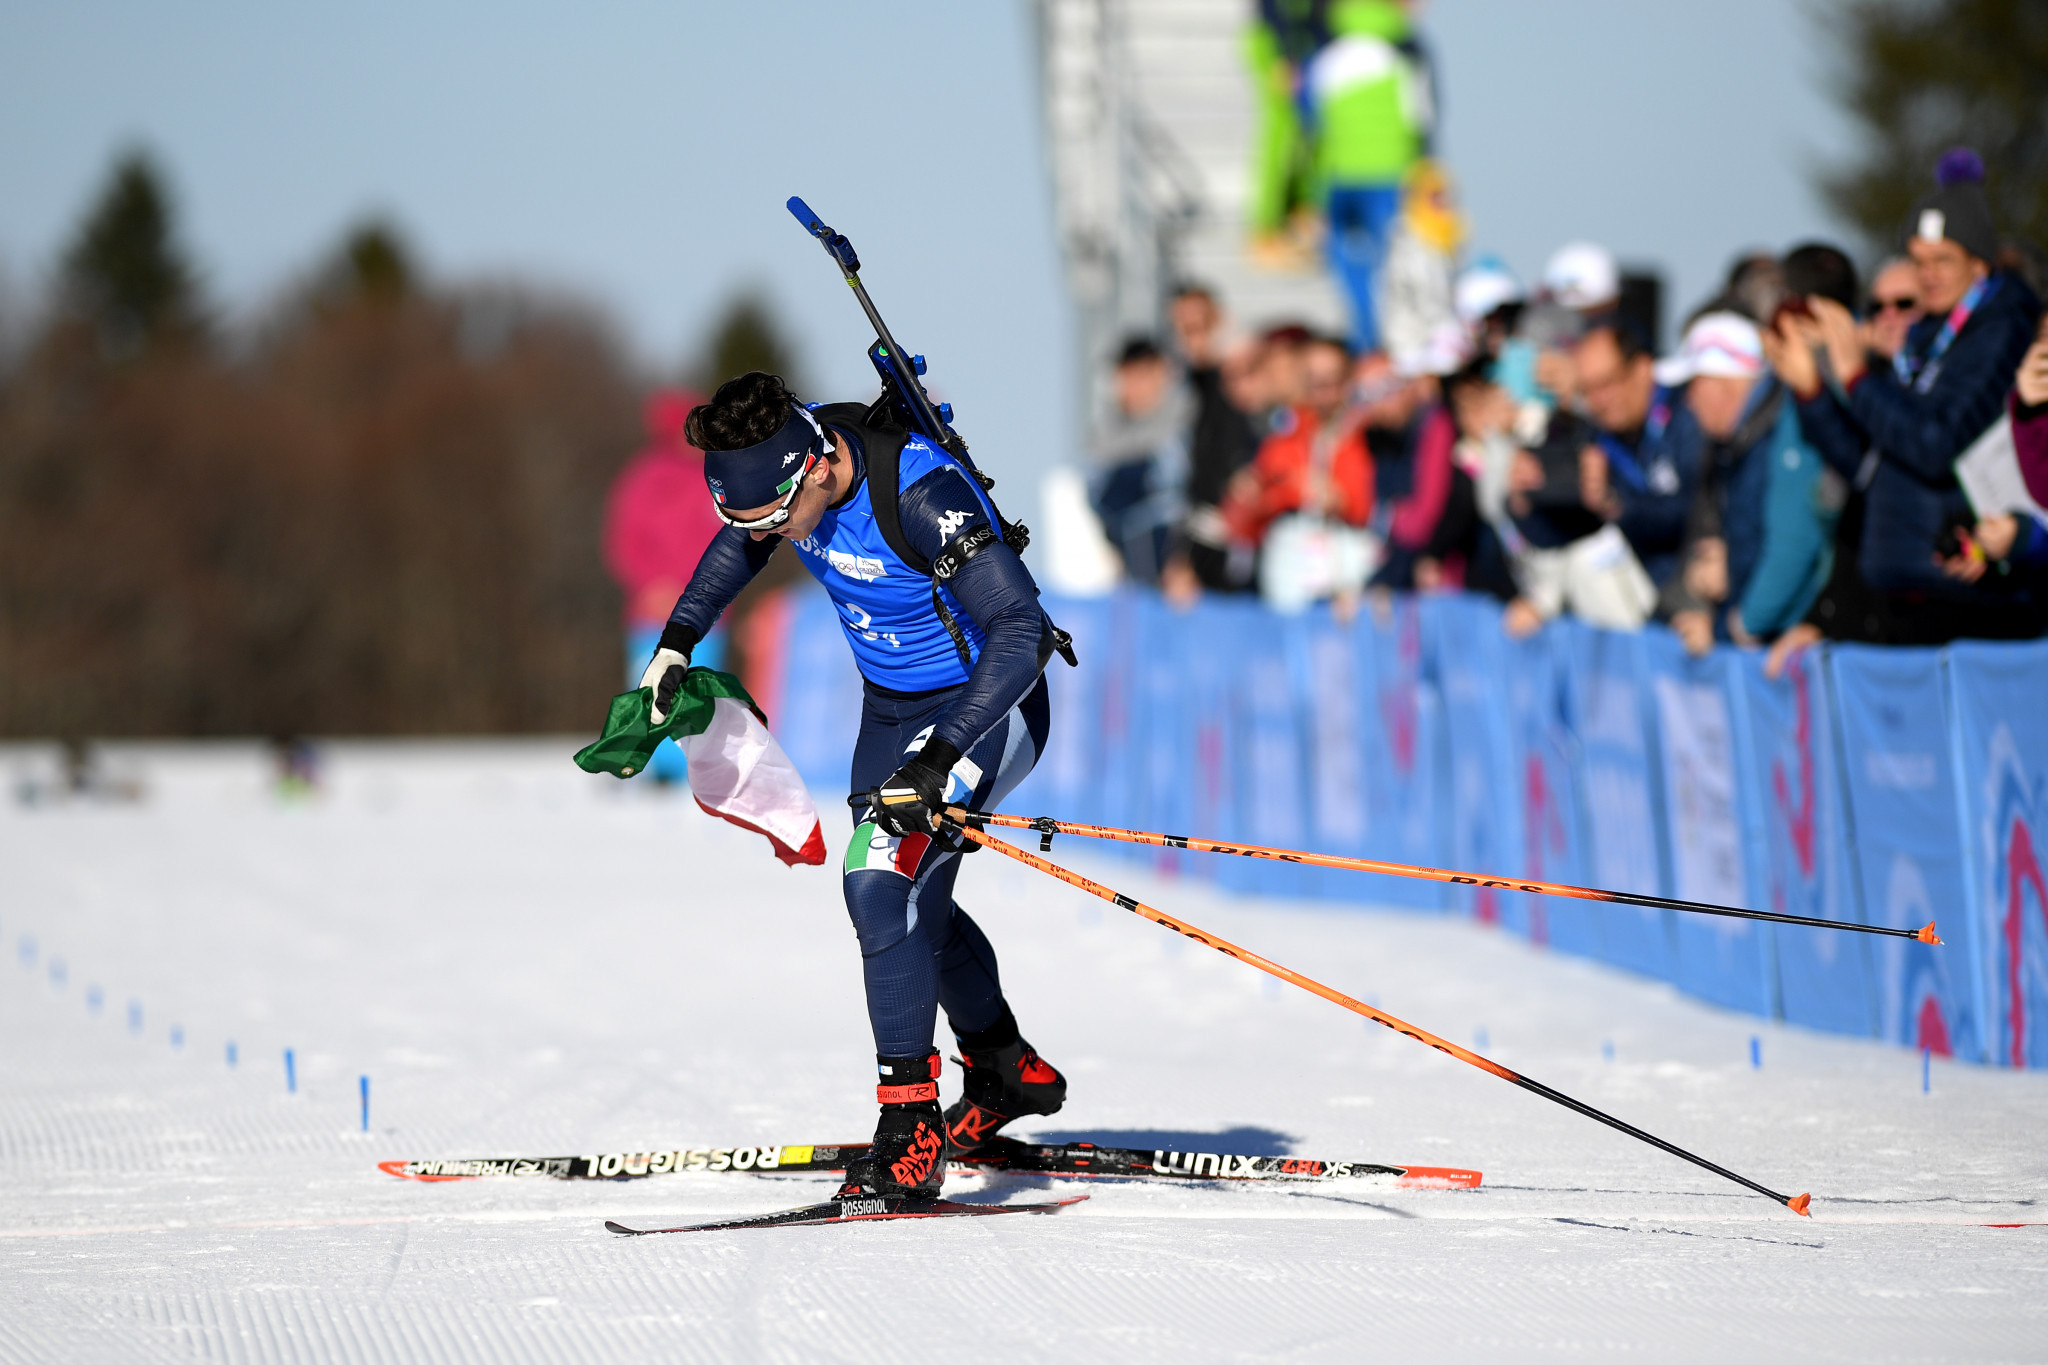 Italy win dramatic mixed relay as biathlon concludes at Lausanne 2020